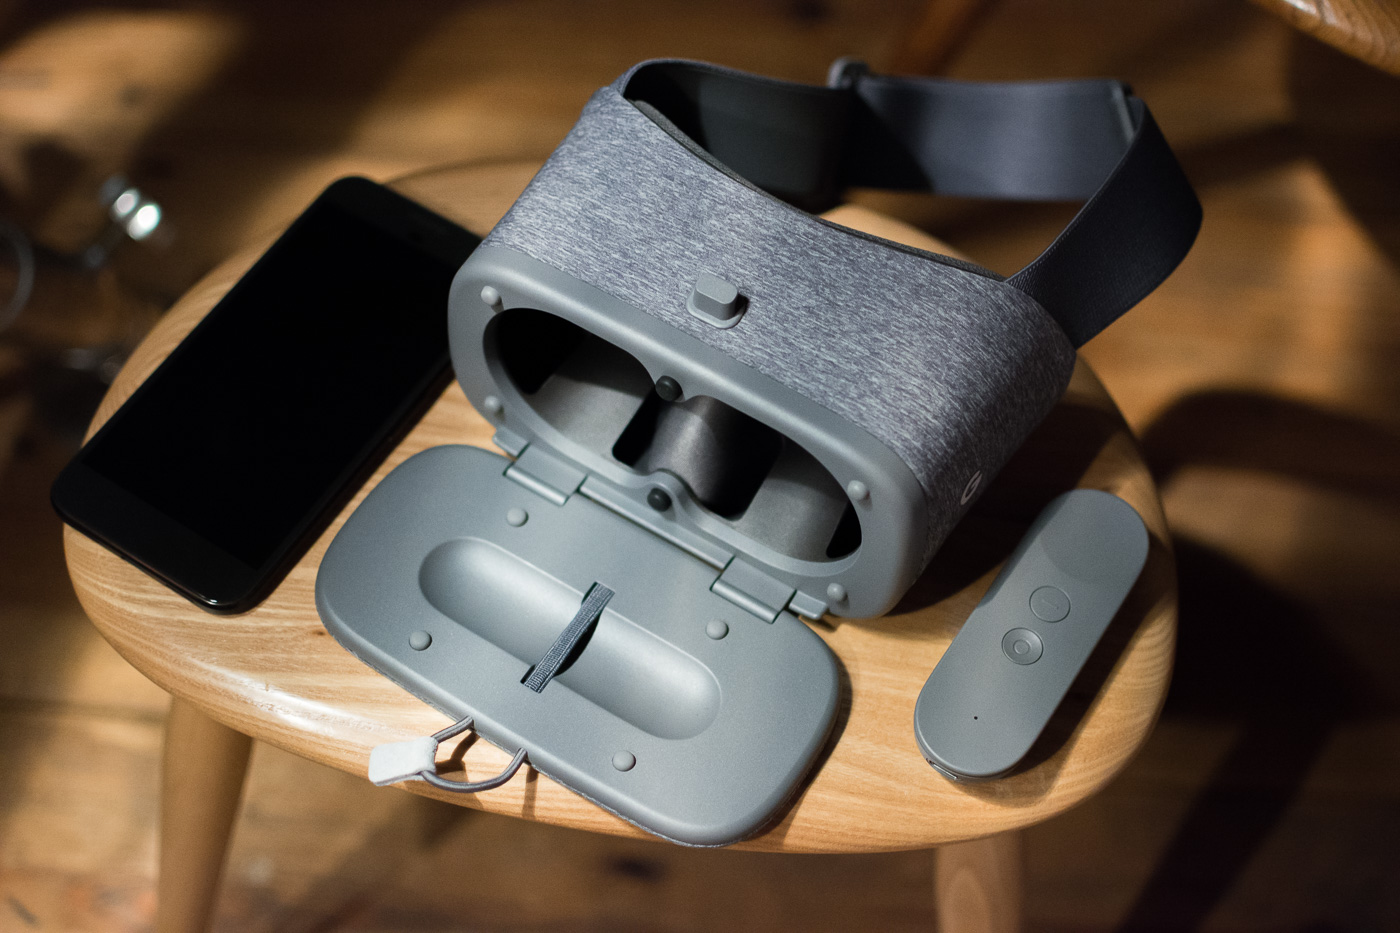 daydream-view-vr-7-of-7